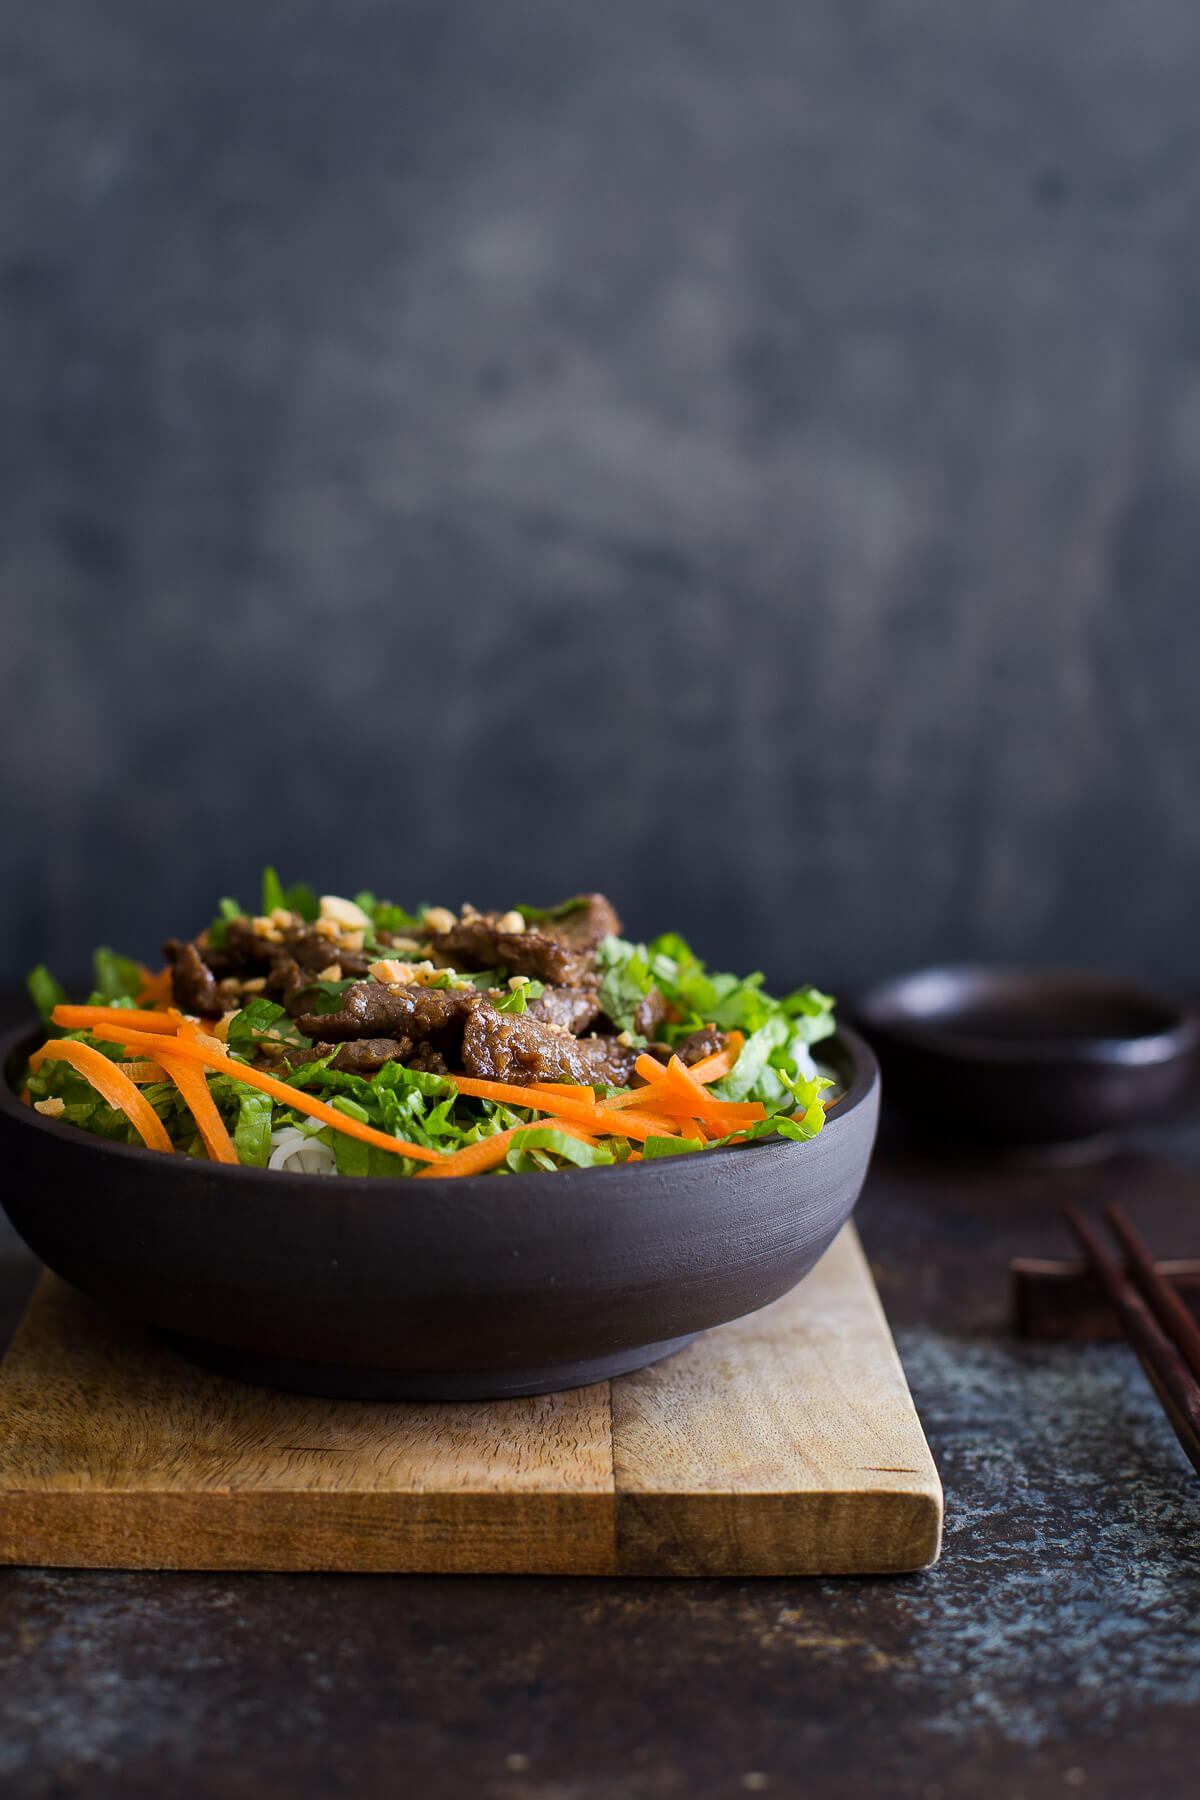 Bowl of Vietnamese lemongrass beef with noodles, lettuce, and shredded carrots.